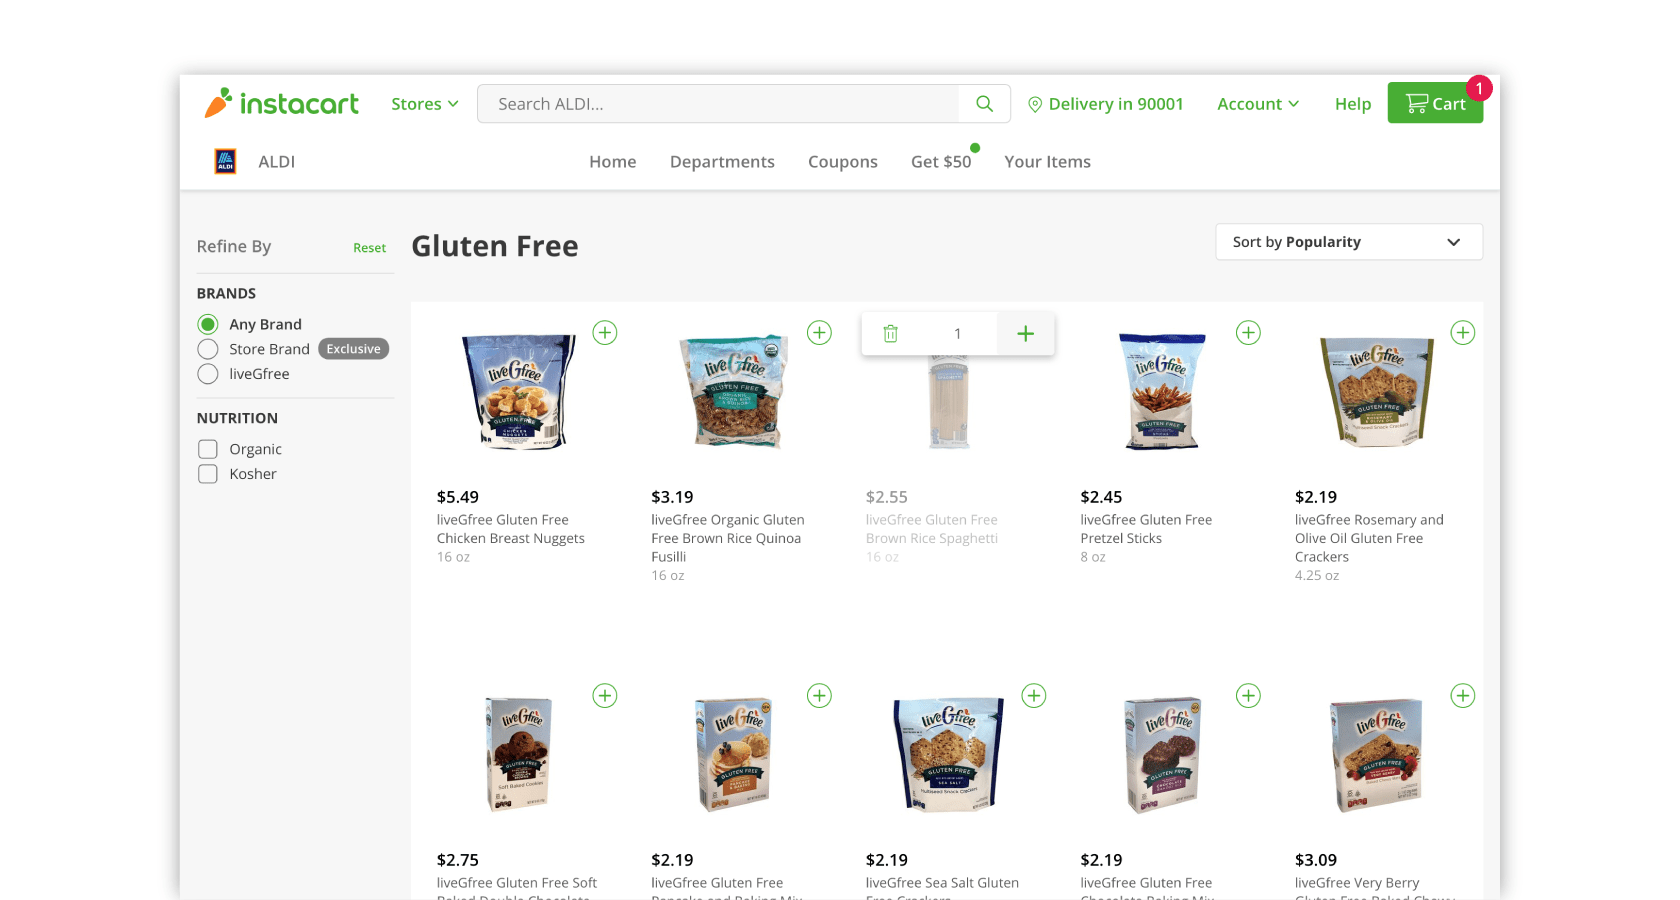 Instacart's website layout design based on UI design best practices